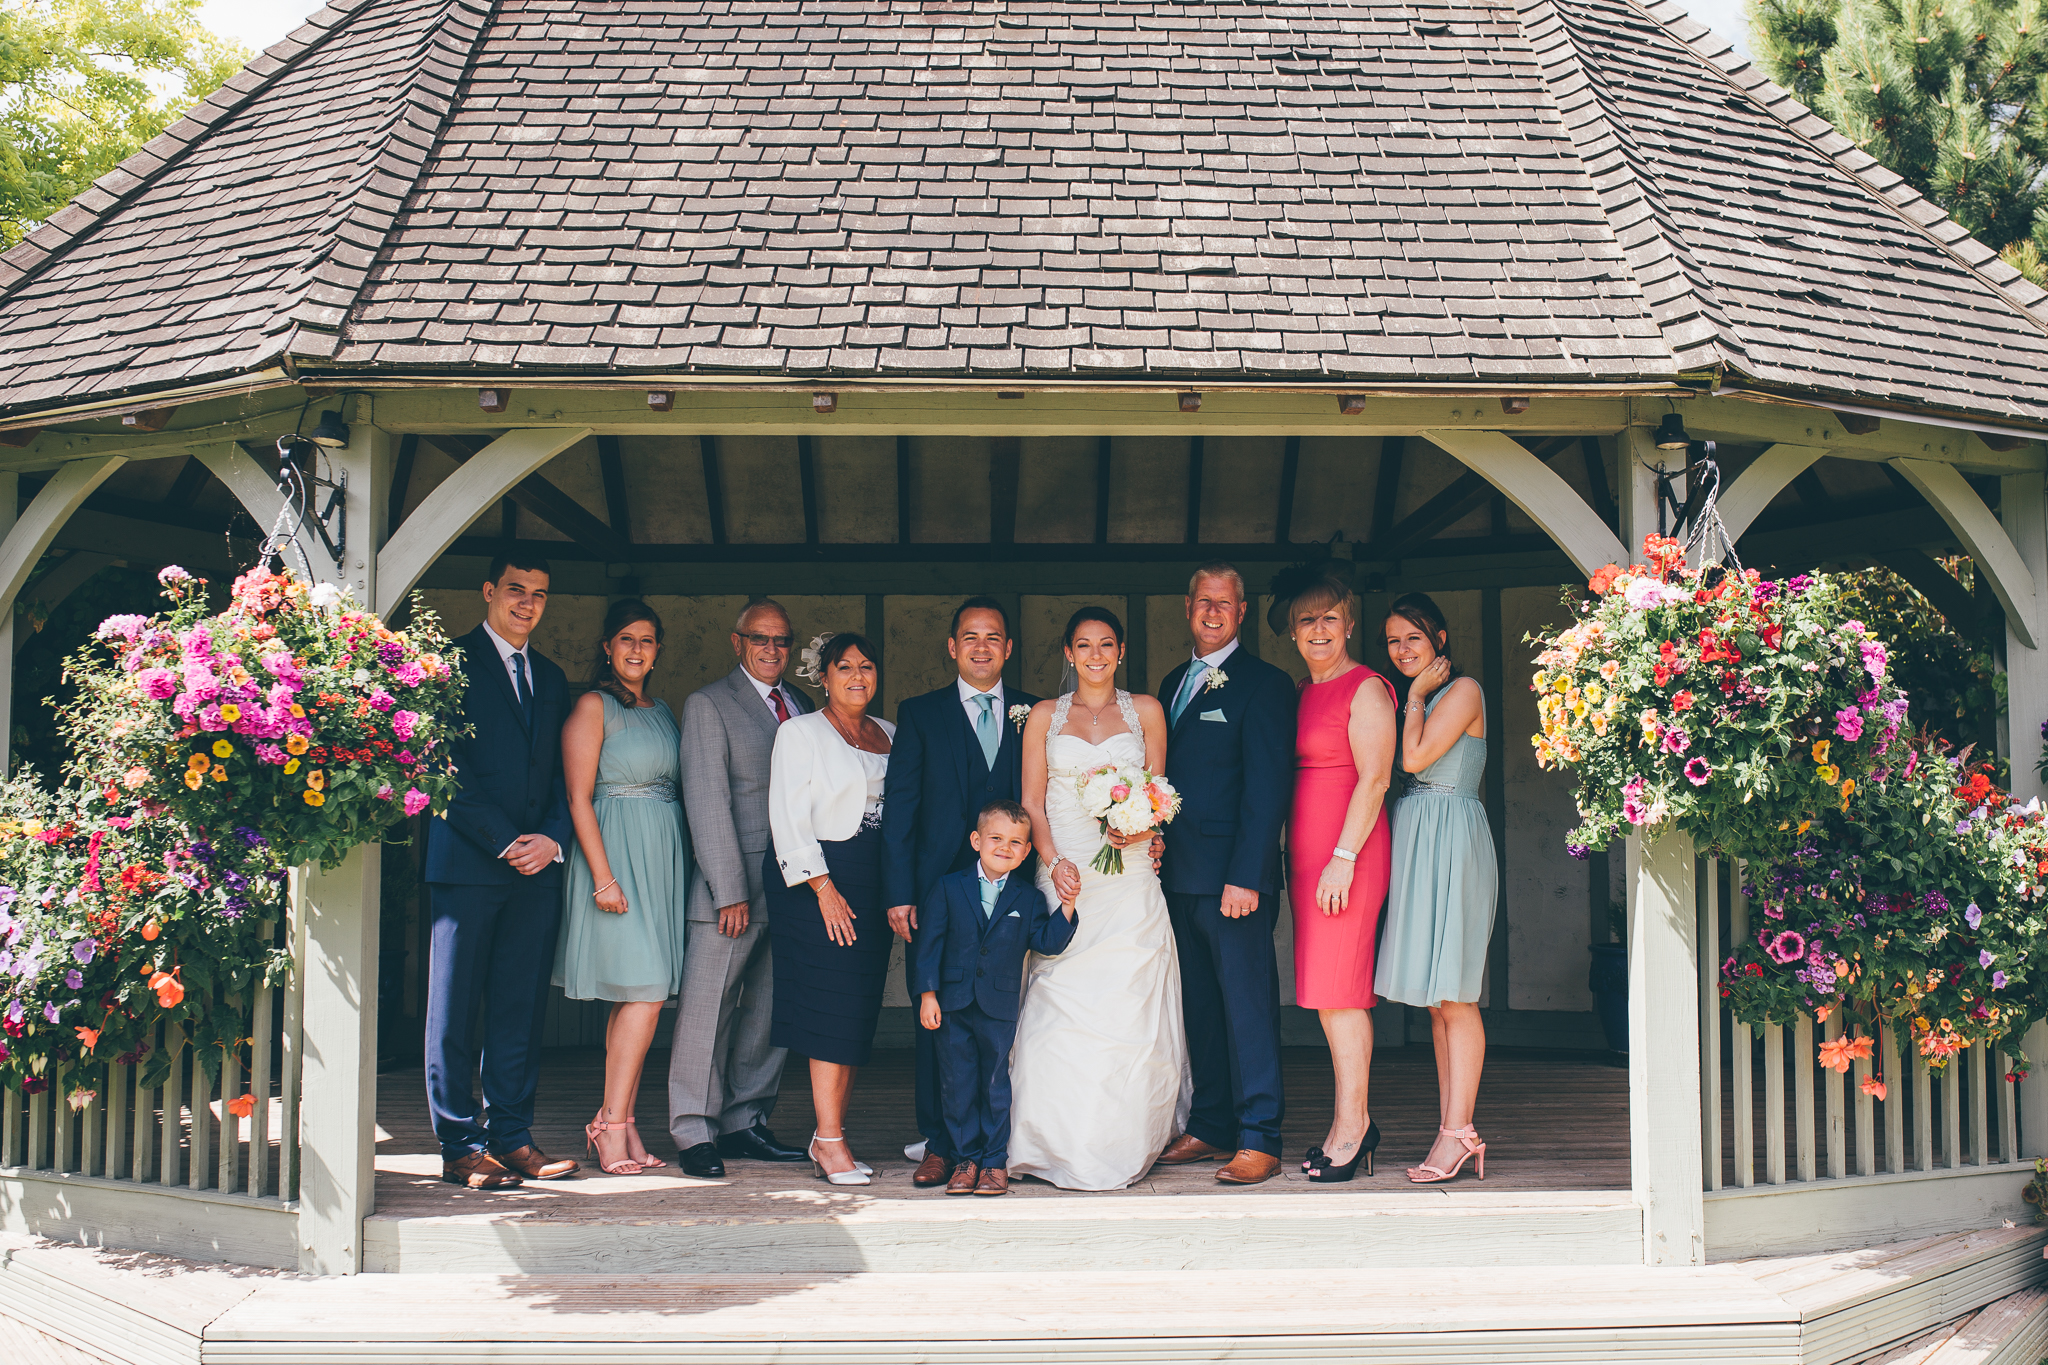 Joanna Nicole Photography Creative artistic wedding photography kent cooling castle barns vintage documentary (48 of 106).jpg